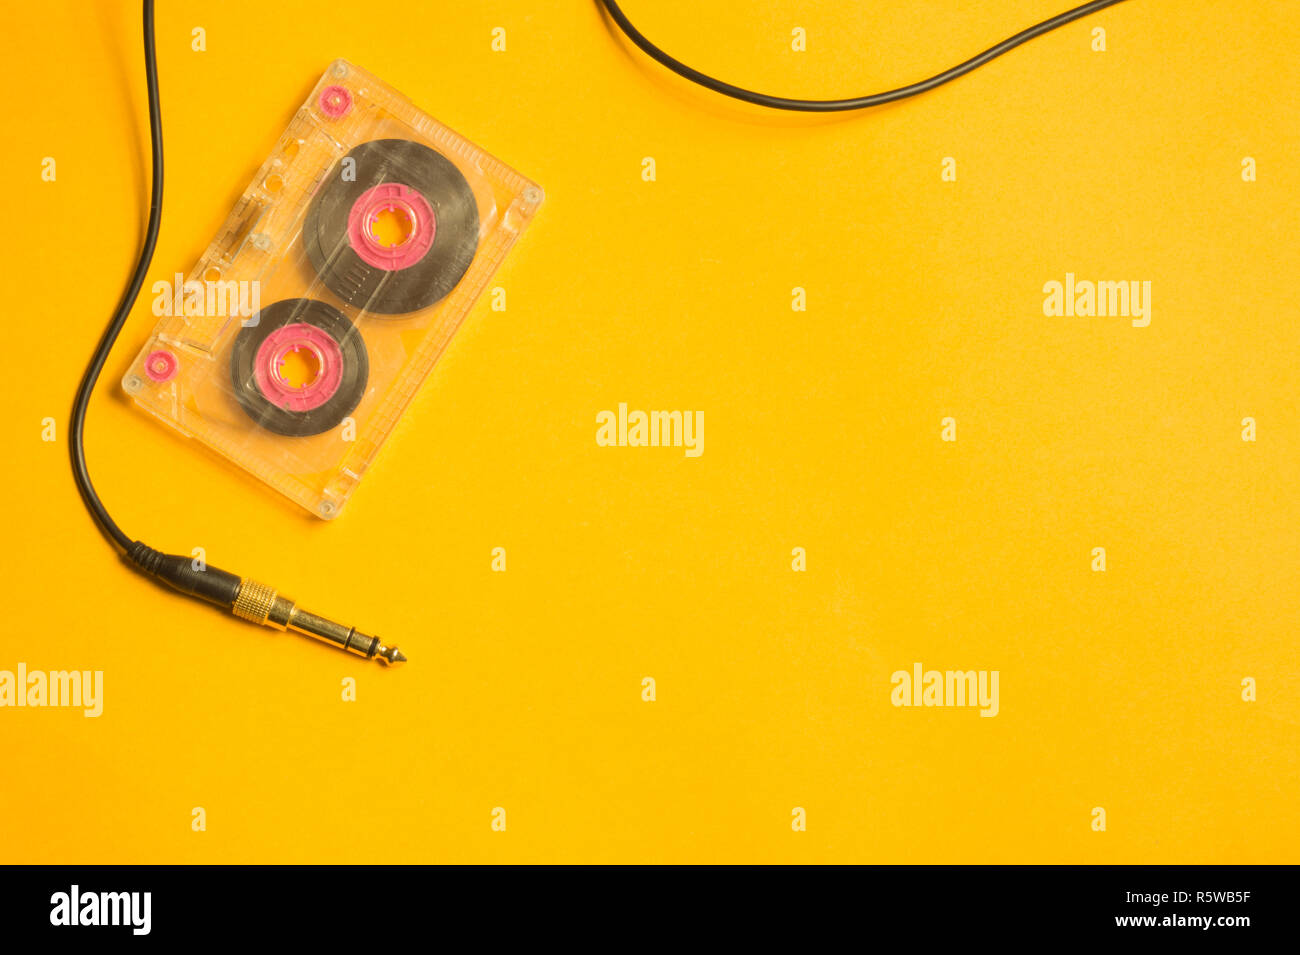 Retro cassette tape and audio jack on the yellow background Stock Photo